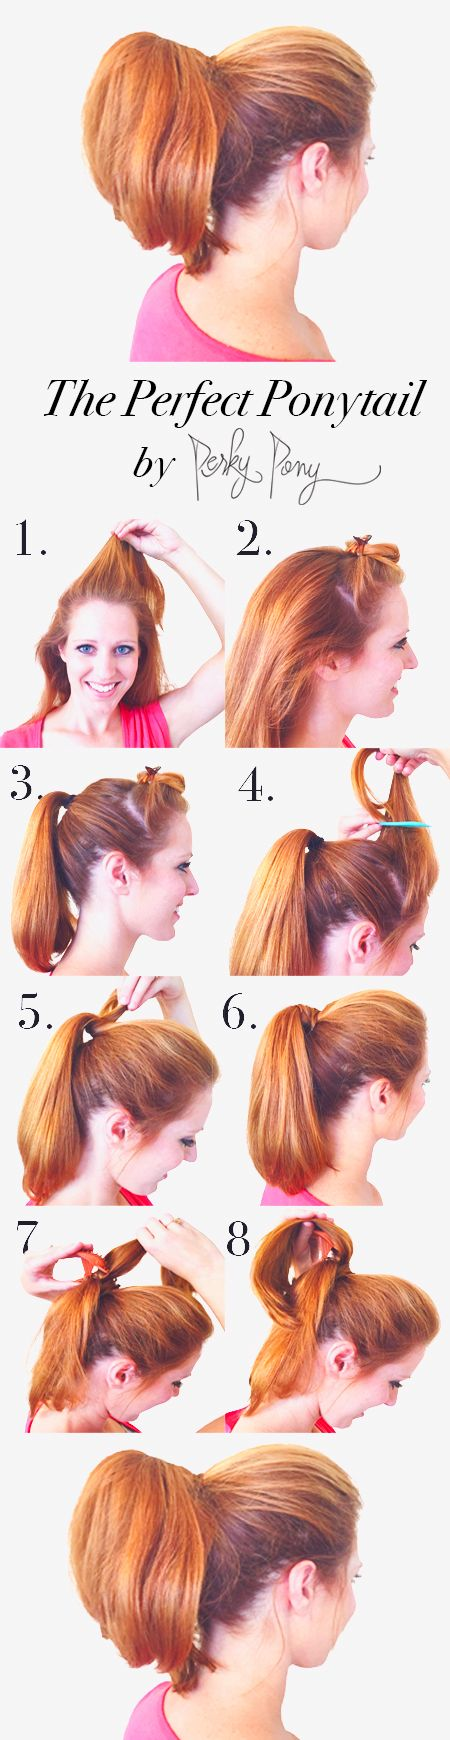 Everyone wants to perfect the ideal ponytail, with a bump in the front and volume in the pony. Finally, a way to get the perfect ponytail without all the hassle! Can I get a hip-hip-hooray?!? #perkypony #cuteponytail #perfectponytail #redhead #volumizedhair #ponytails